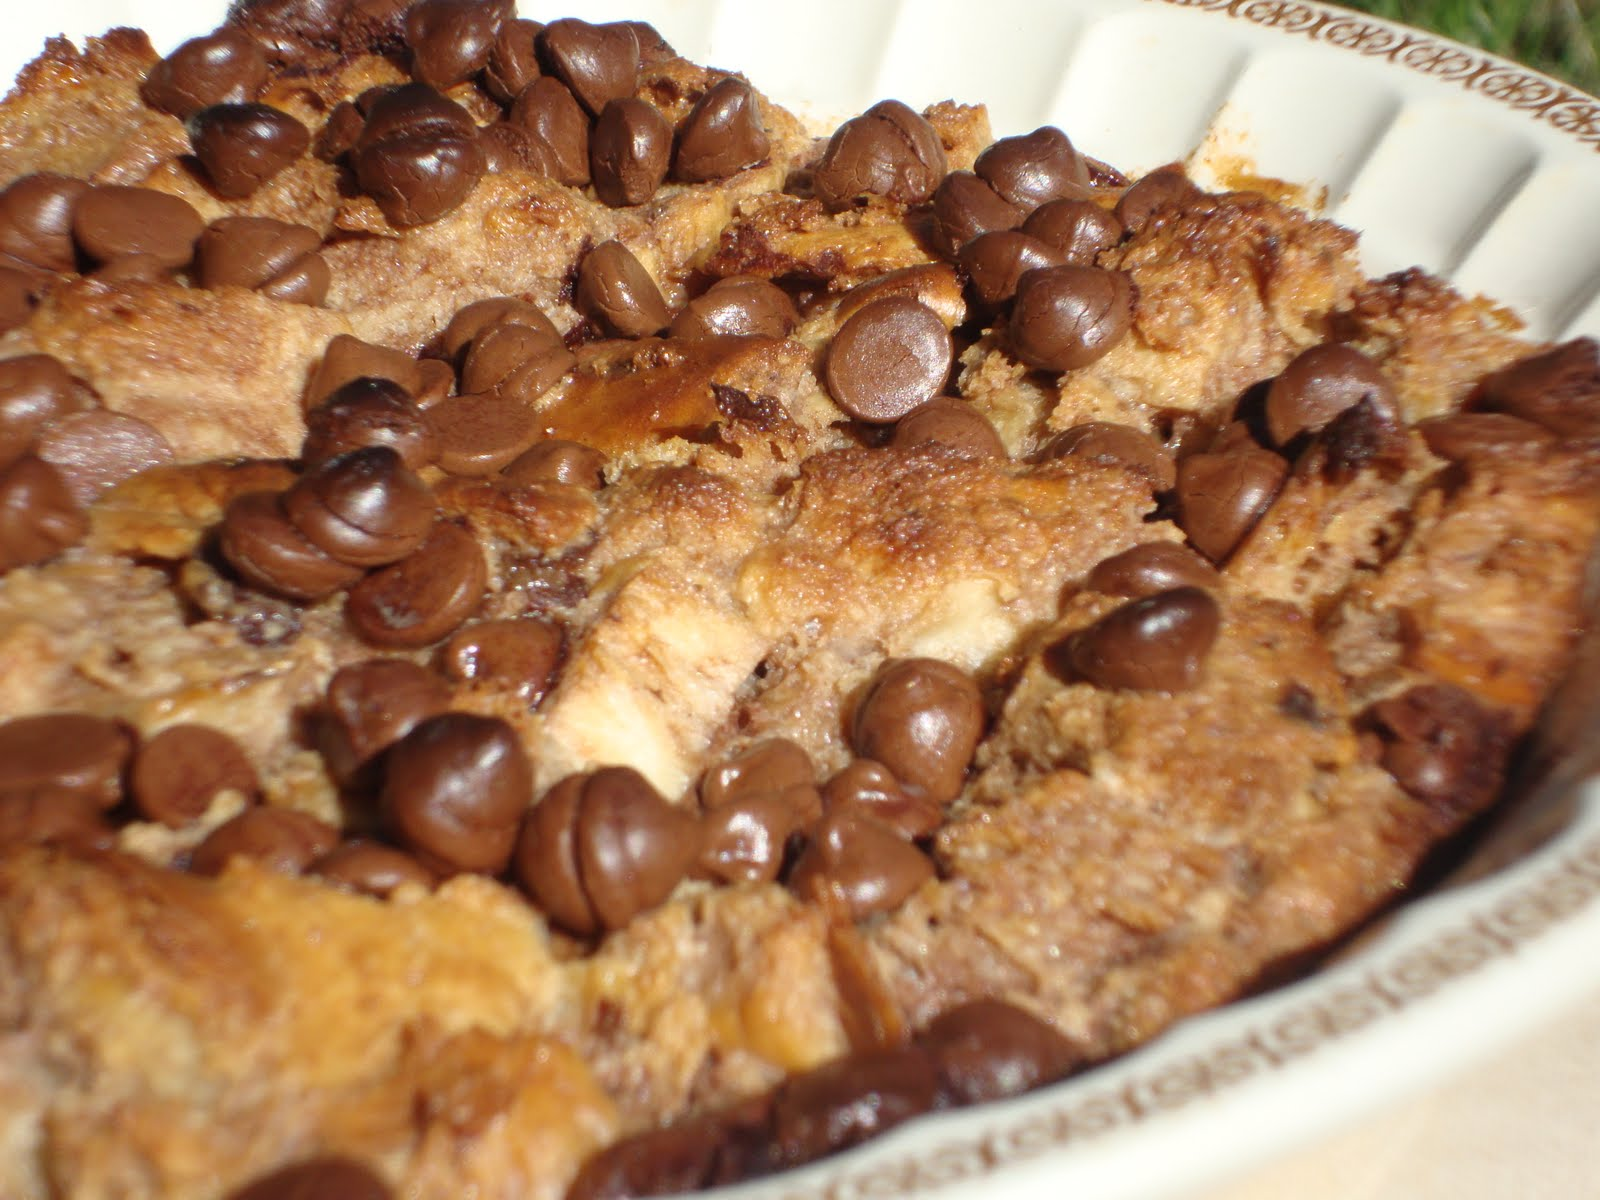 Raspberry chocolate chip bread pudding an excellent way to re-purpose ...